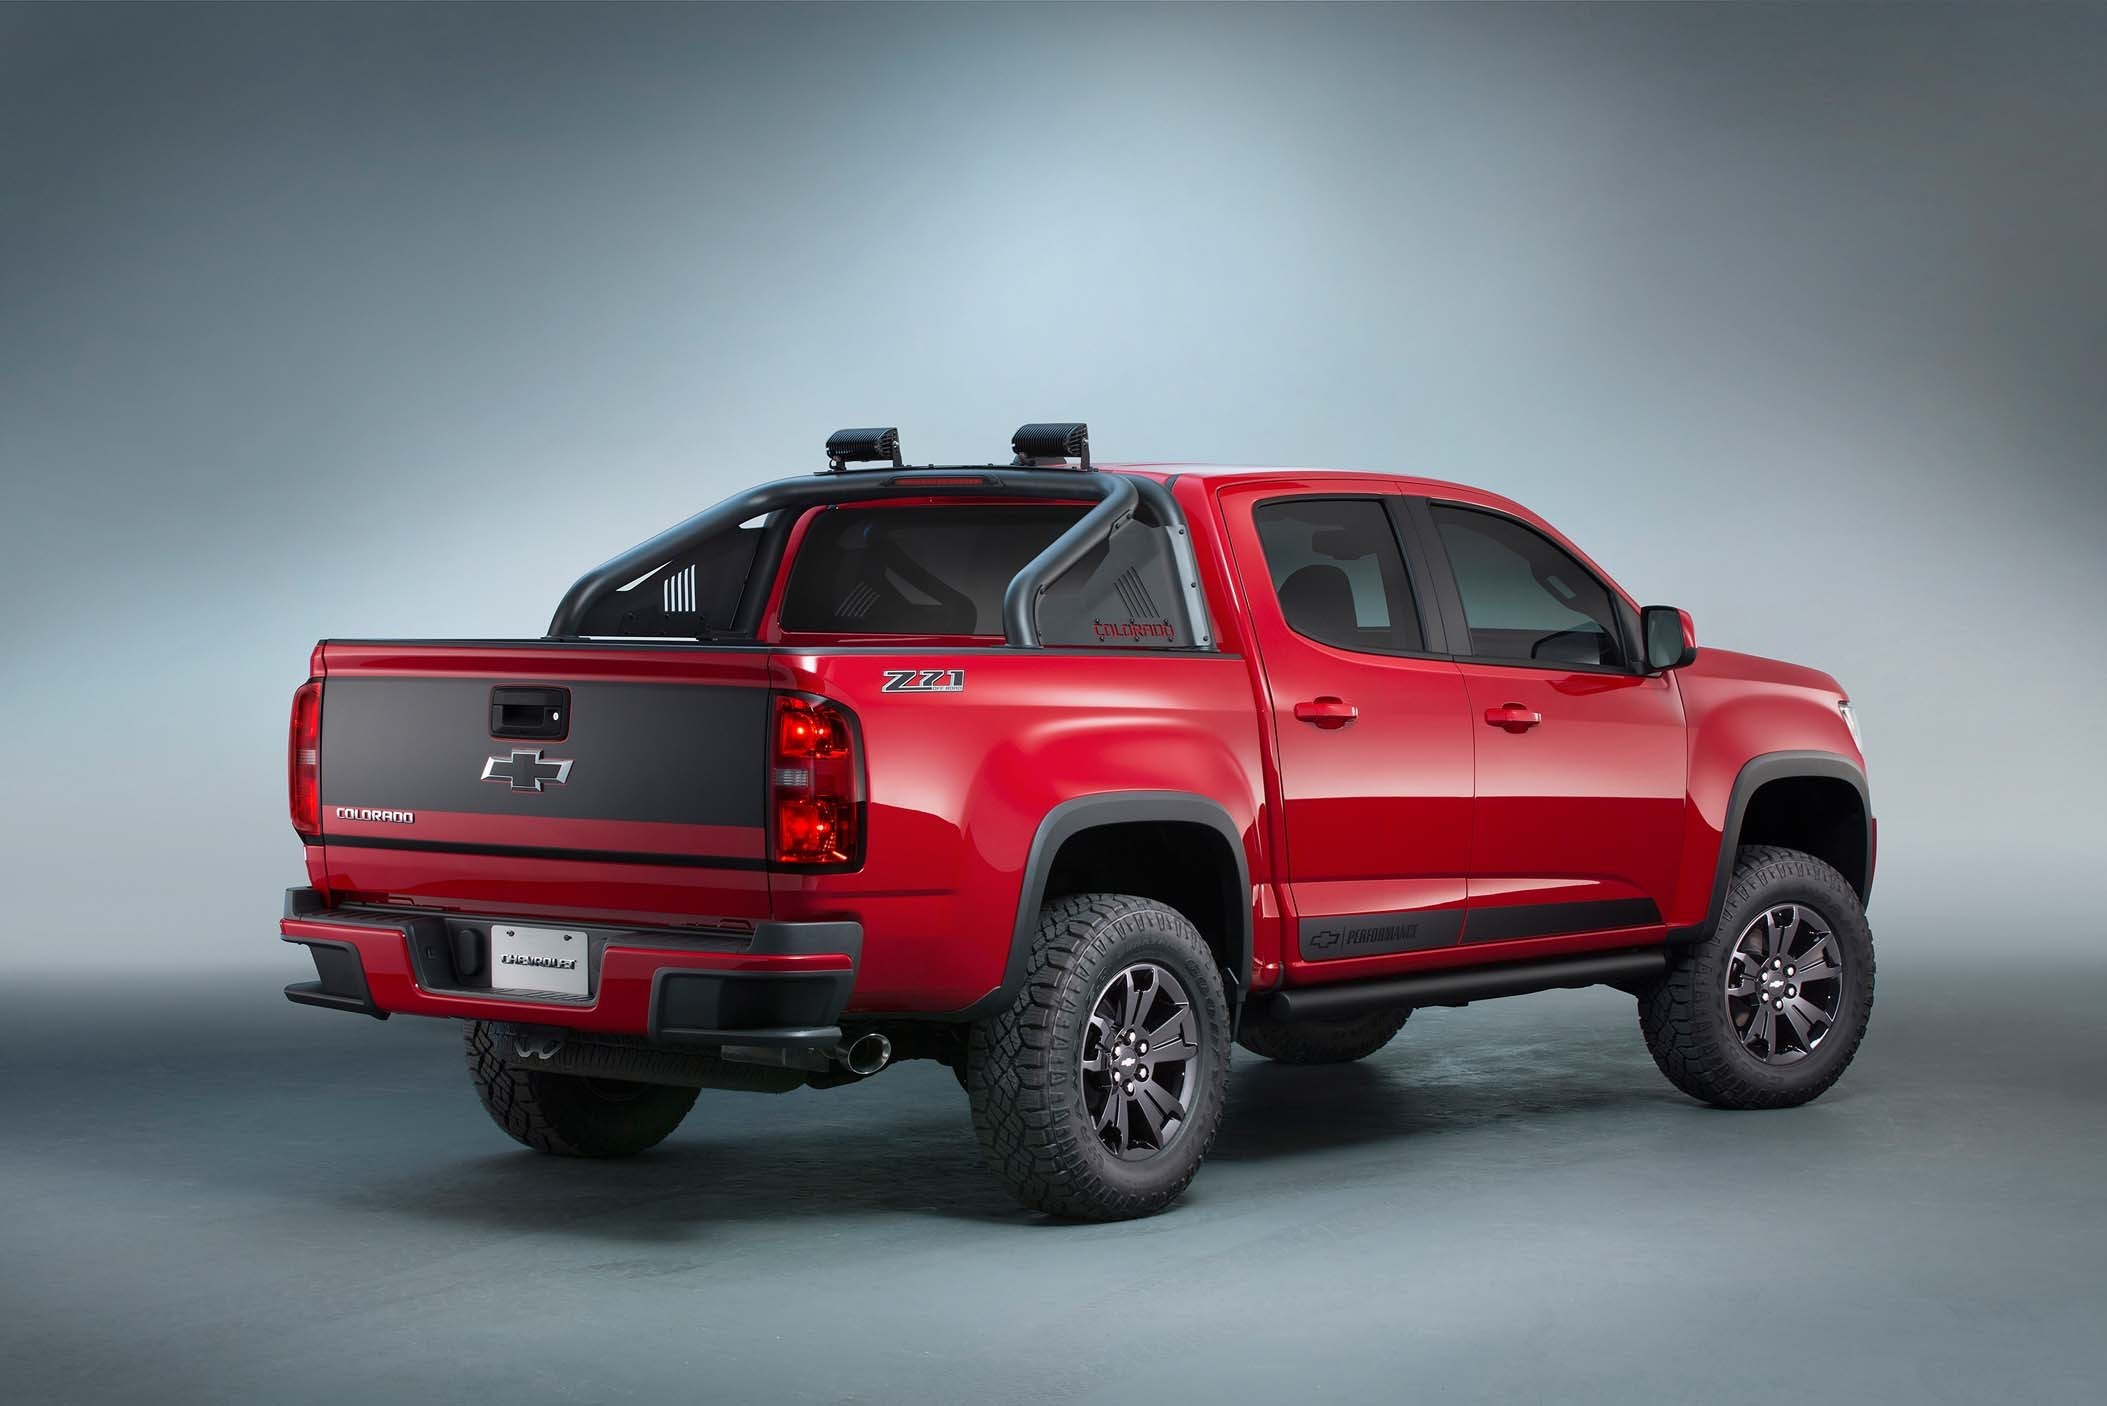 2017 Ford F 150 Towing Capacity >> Chevrolet Colorado Z71 Trail Boss 3.0 Concept Is a Ford F-150 Raptor Clone at SEMA - autoevolution